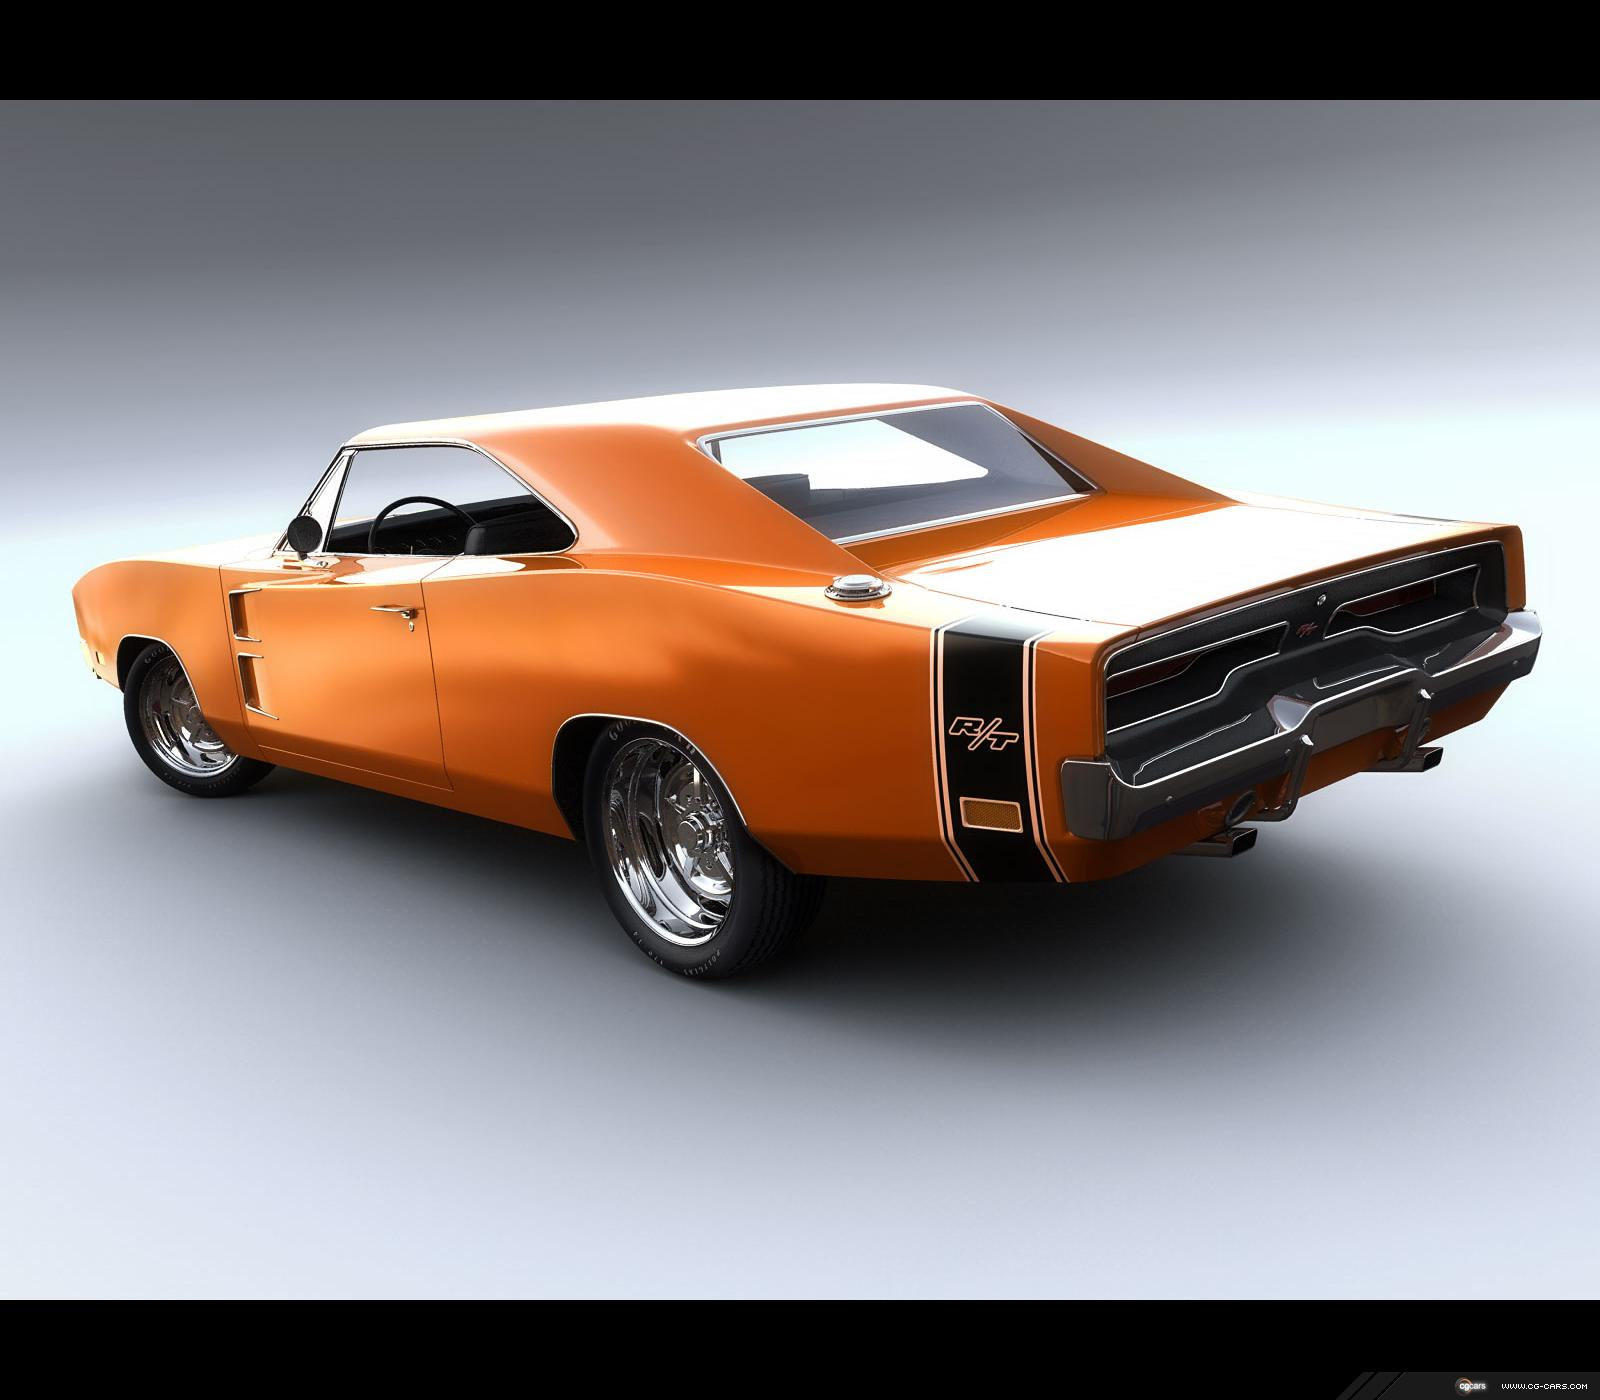 69 Dodge Charger Wallpaper